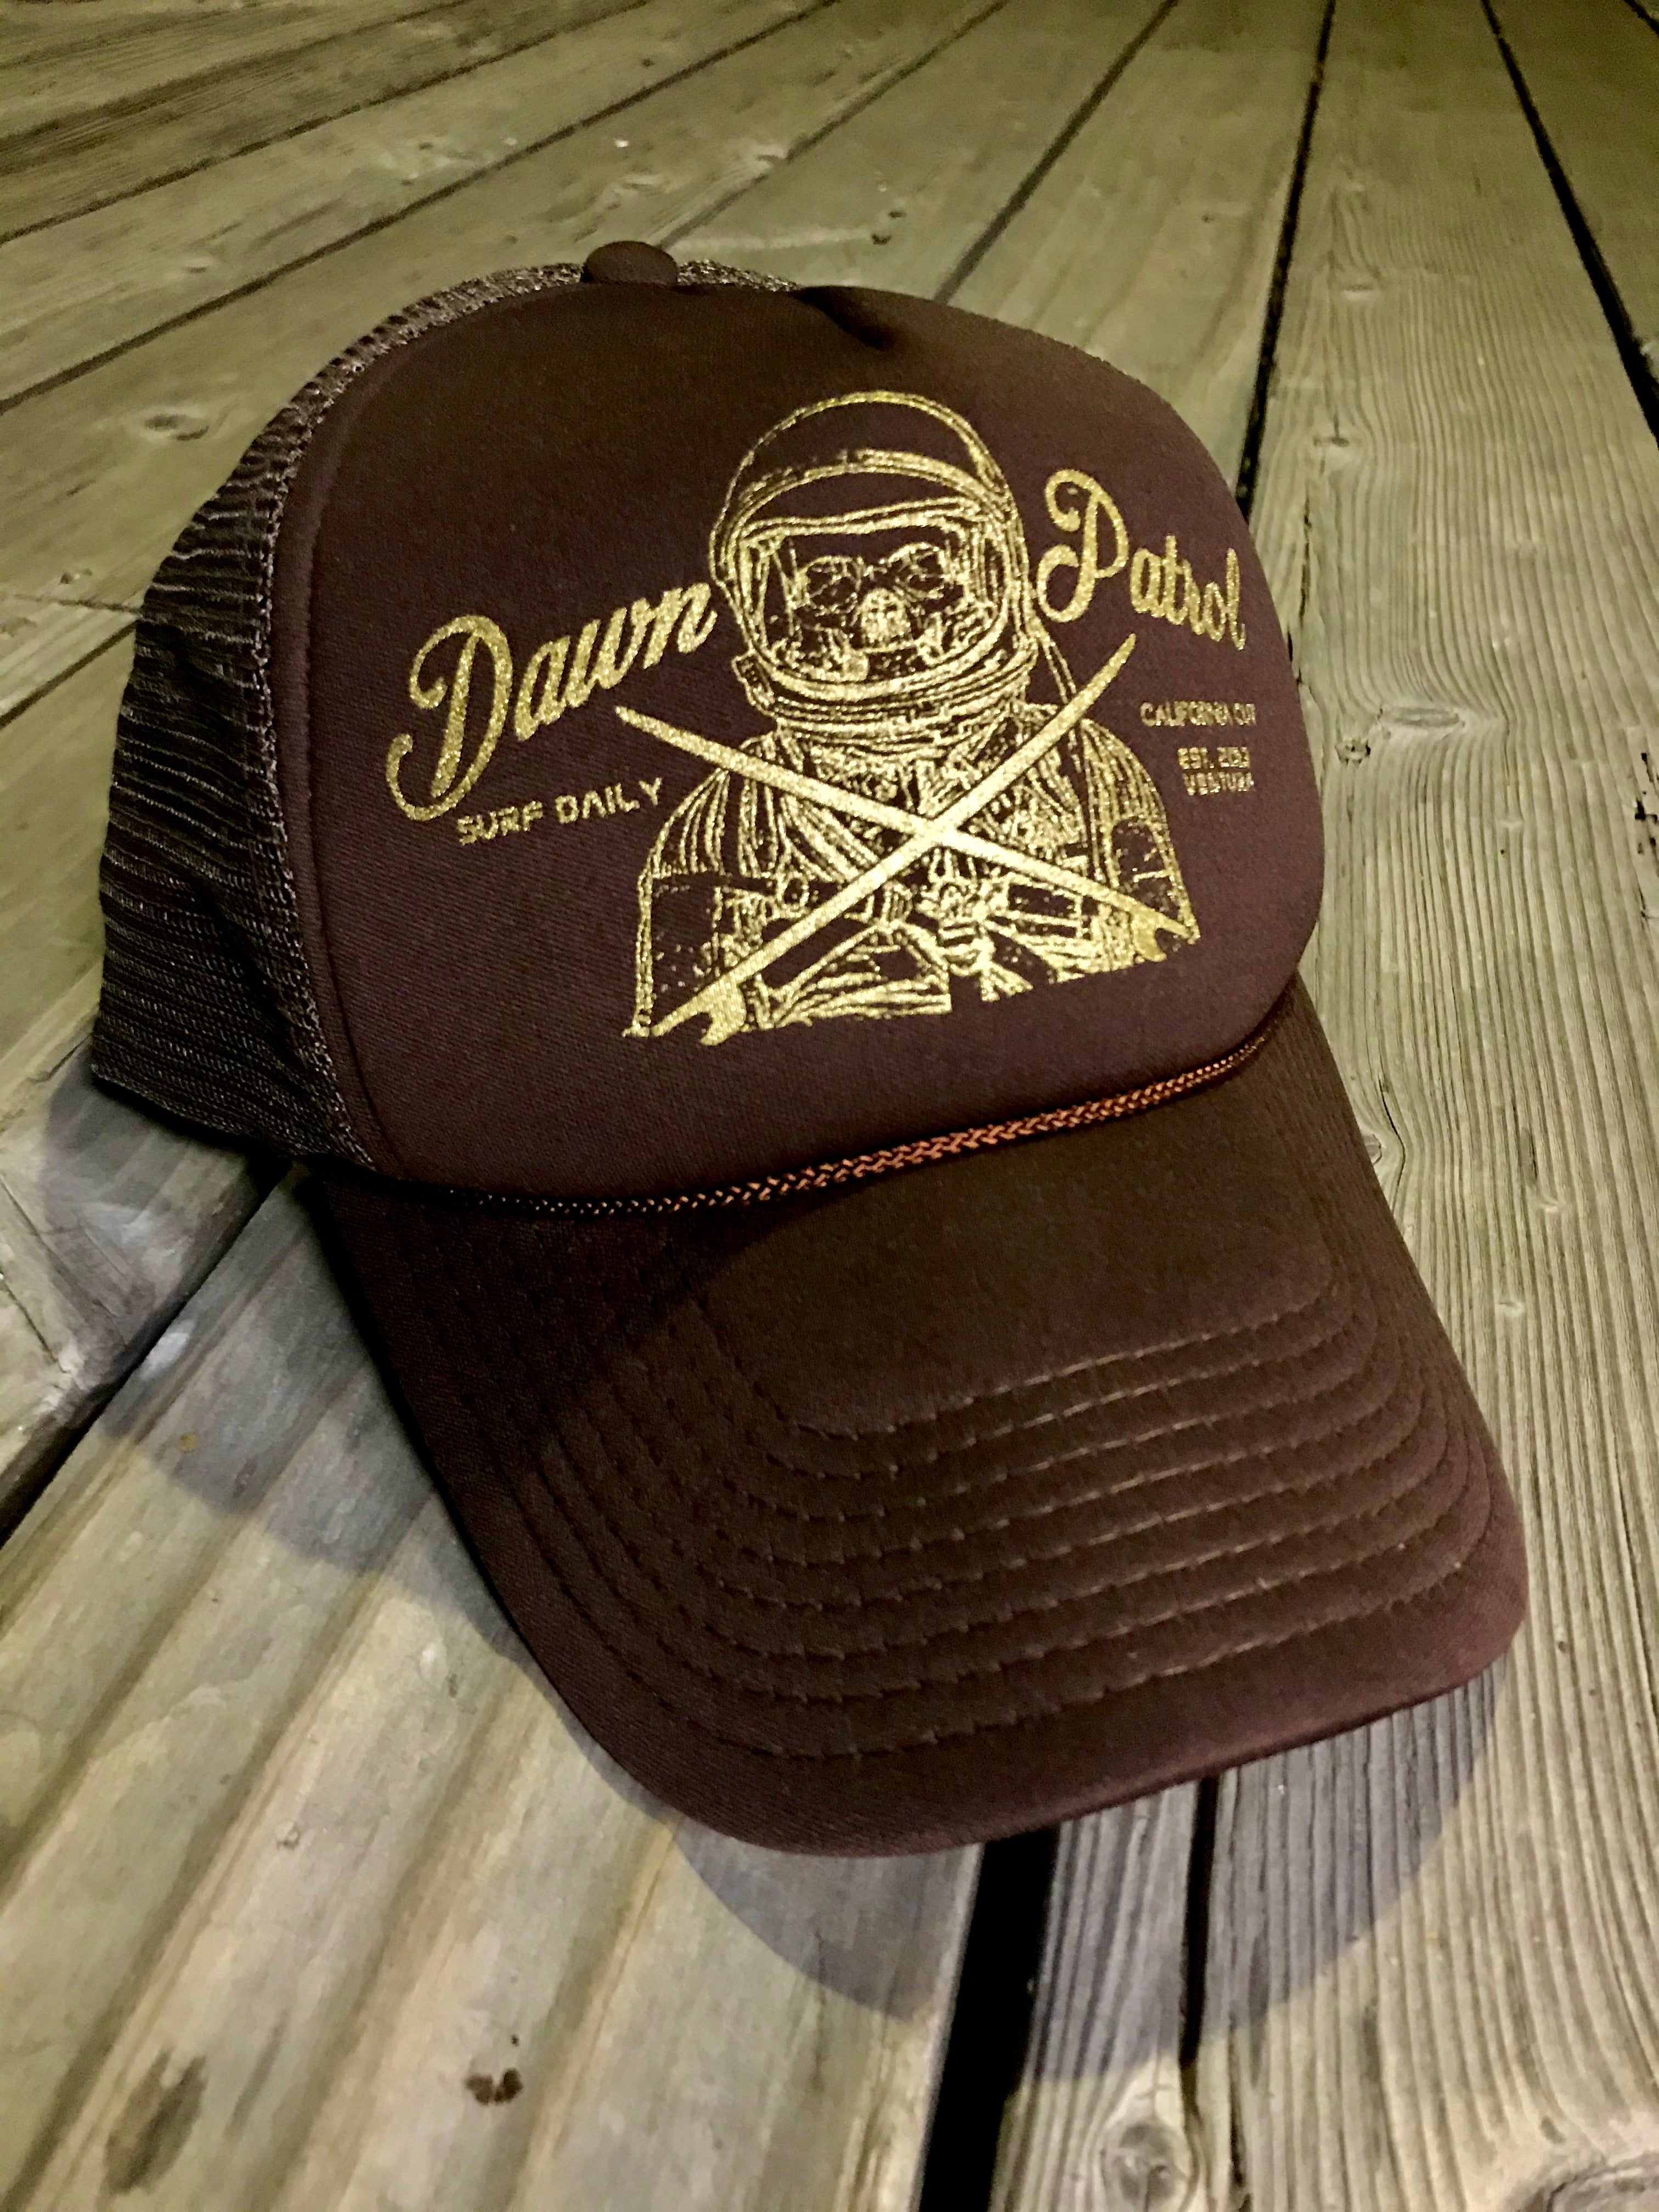 Dawn Patrol trucker hat